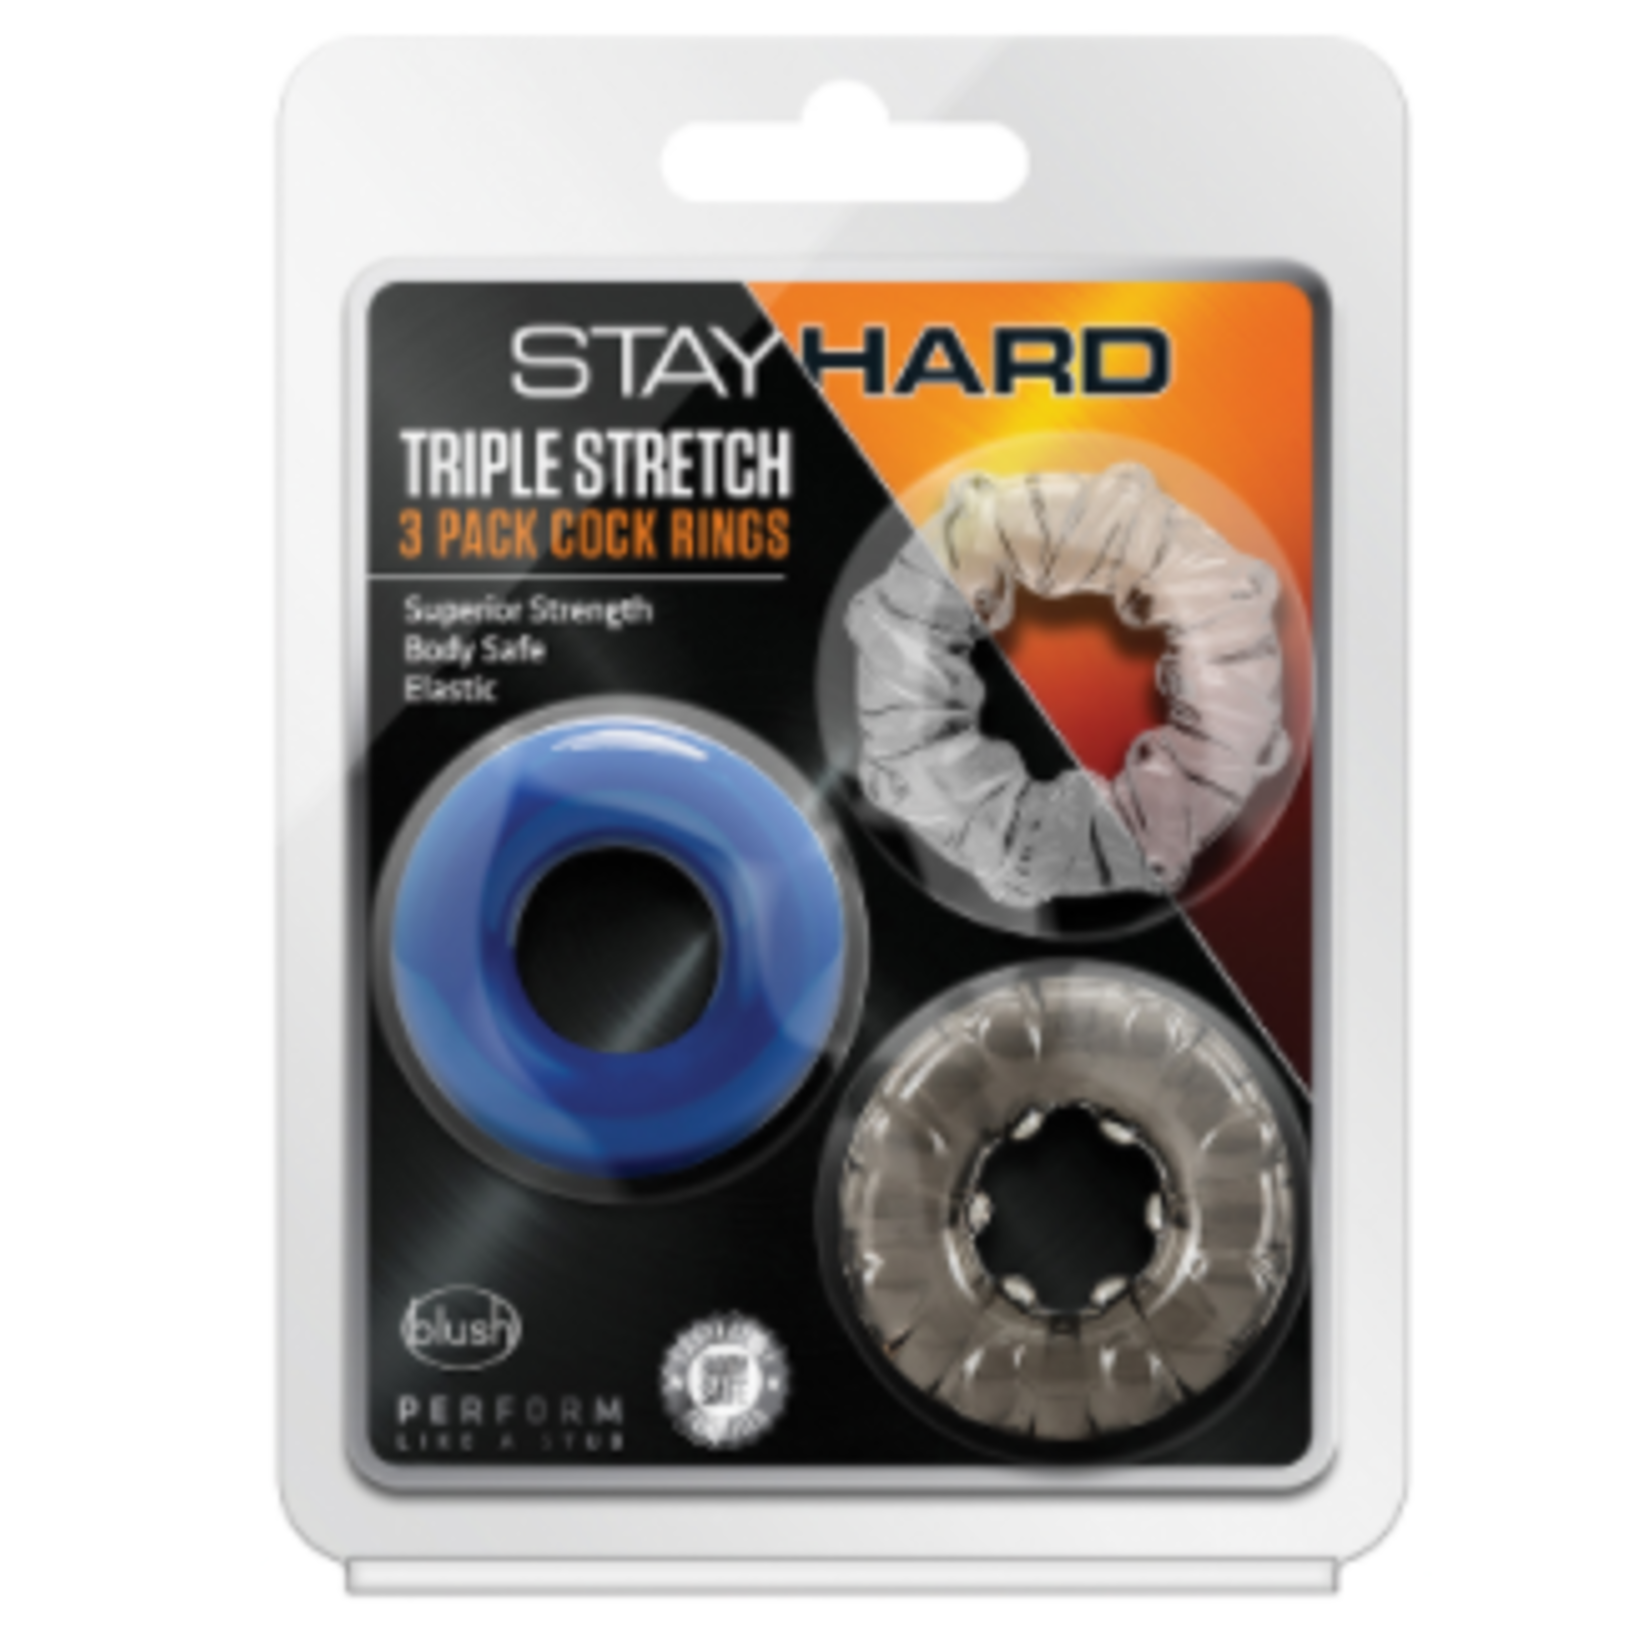 Stay Hard Triple Stretch Cock Rings (3 Pack) - Multiple Colors